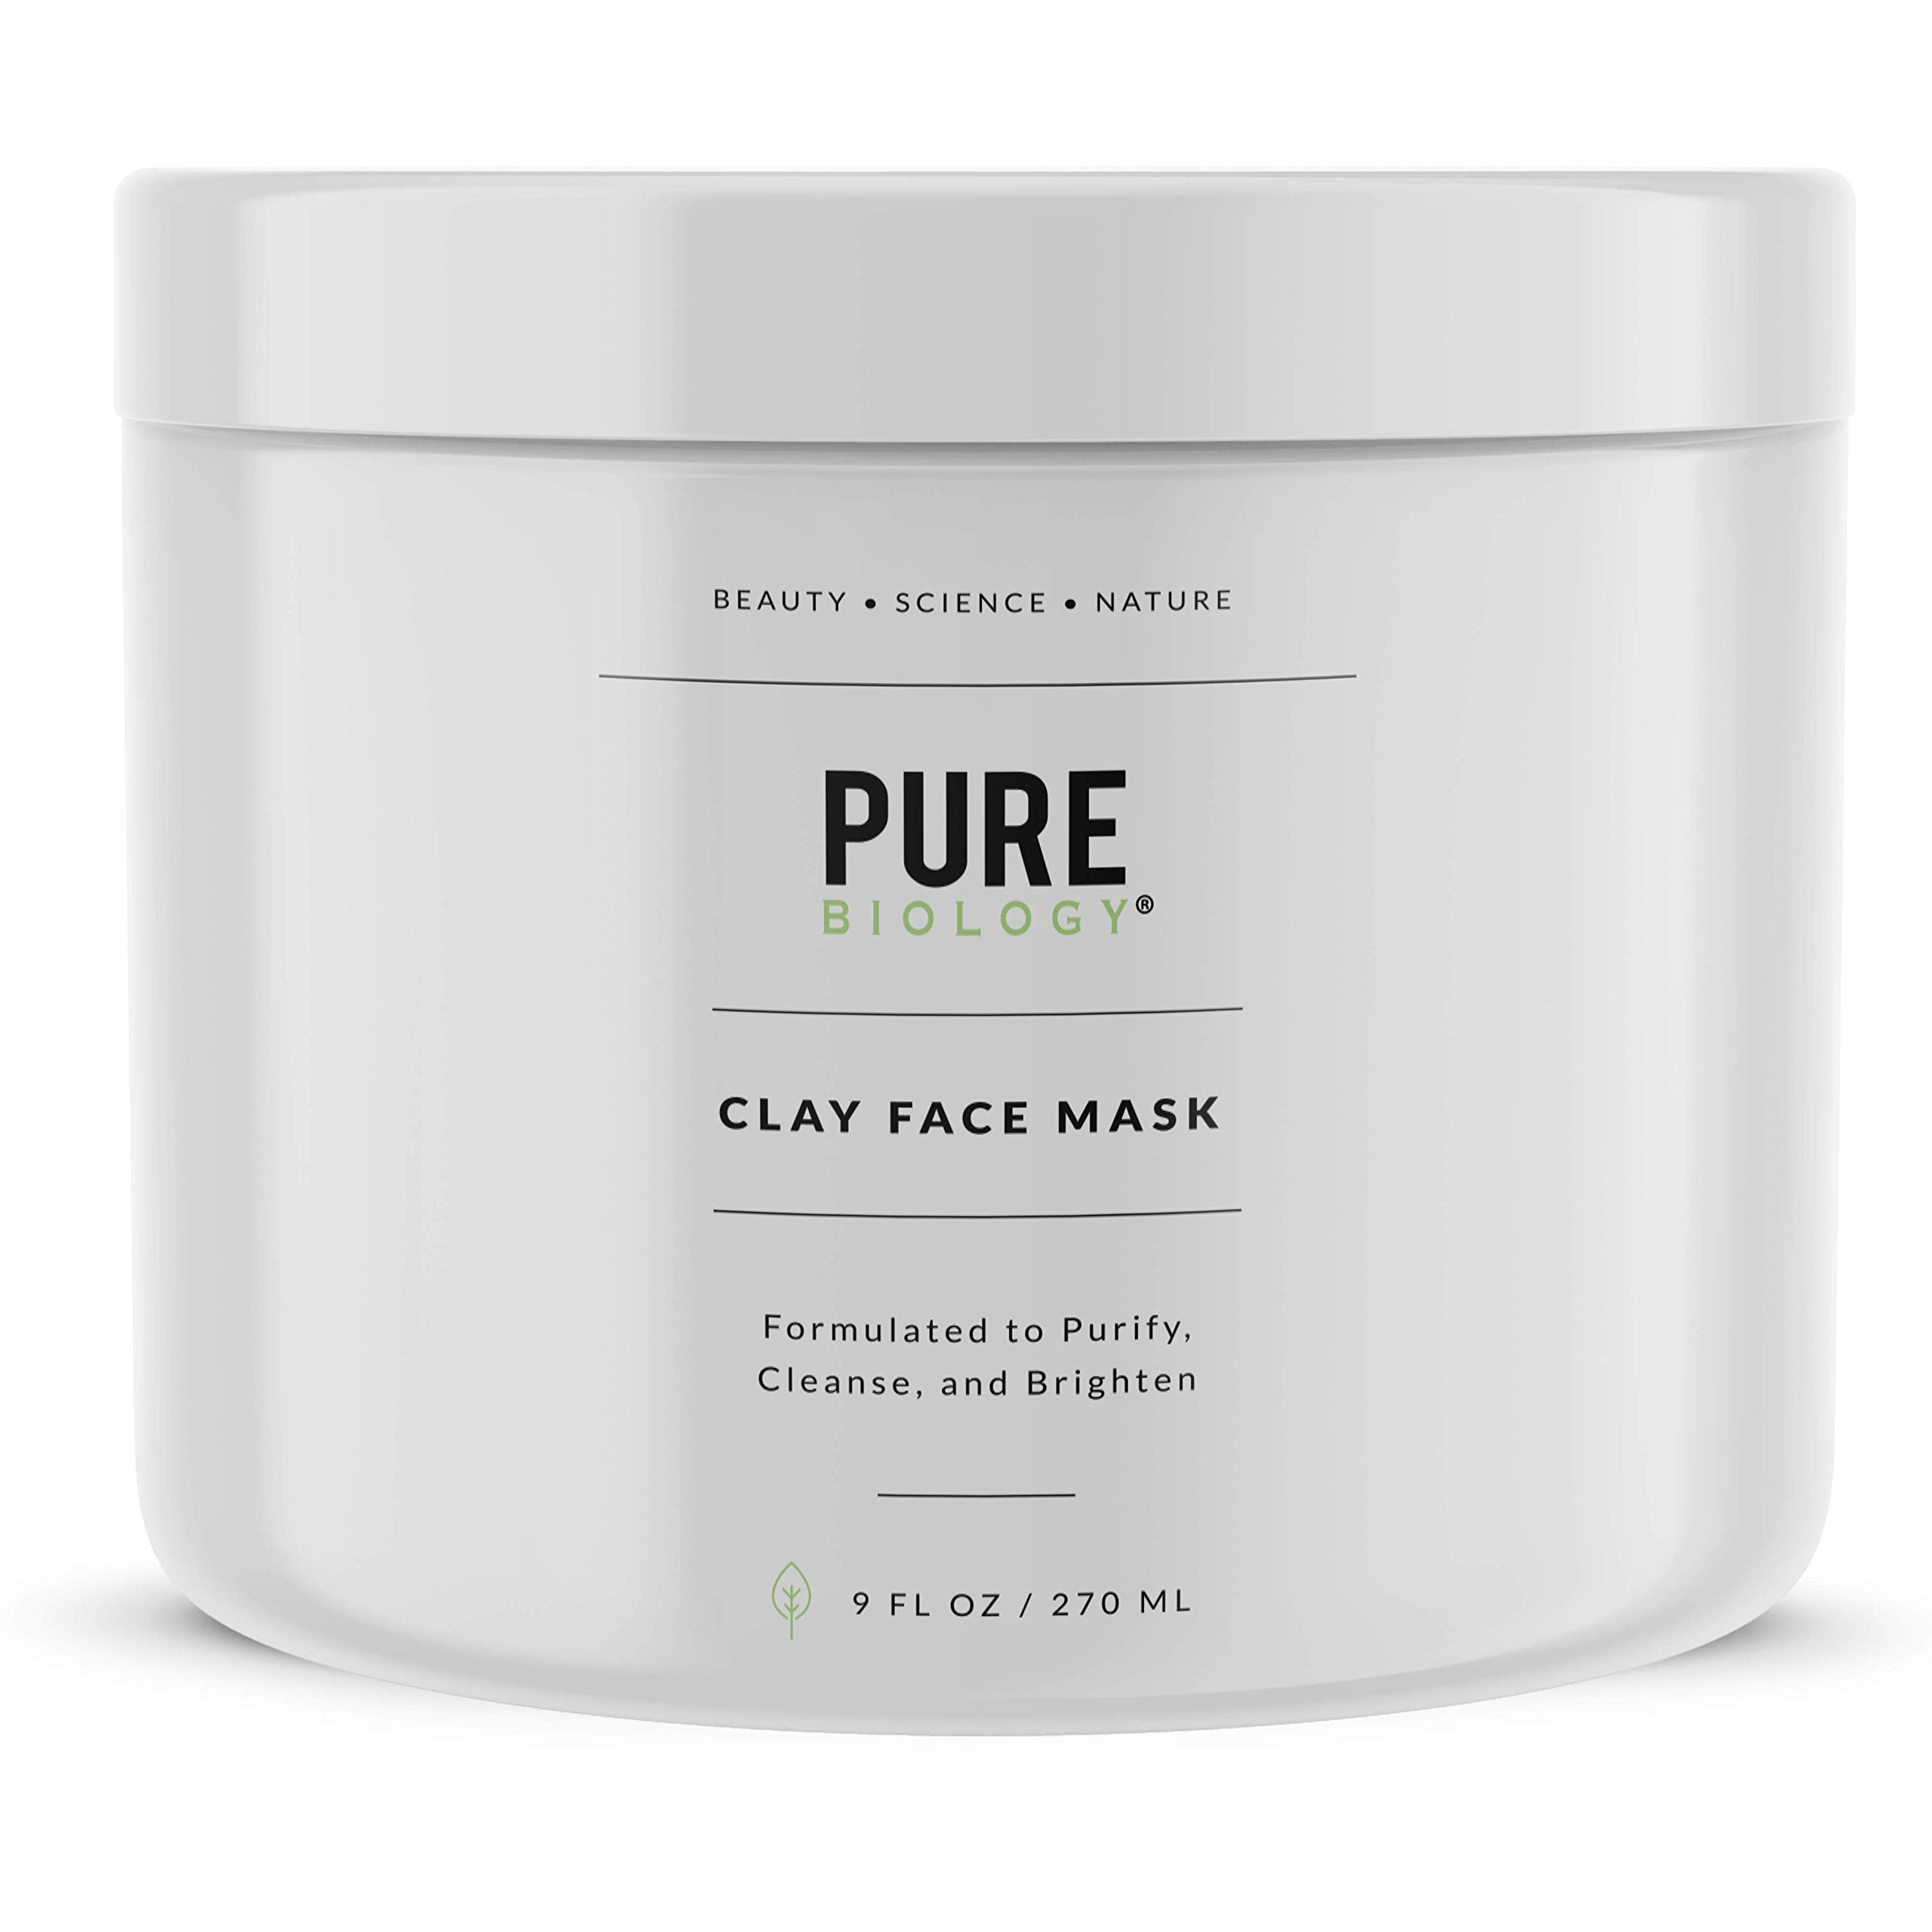 Premium Face Mask - Bentonite Clay, Retinol, Collagen Peptides, Kaolin, Vitamins B, C, E - Cleanse, Smooth & Minimize Deep Pores, Dark Spots, Blackheads & Acne Scars - Men & Women, All Skin Types by Pure Biology